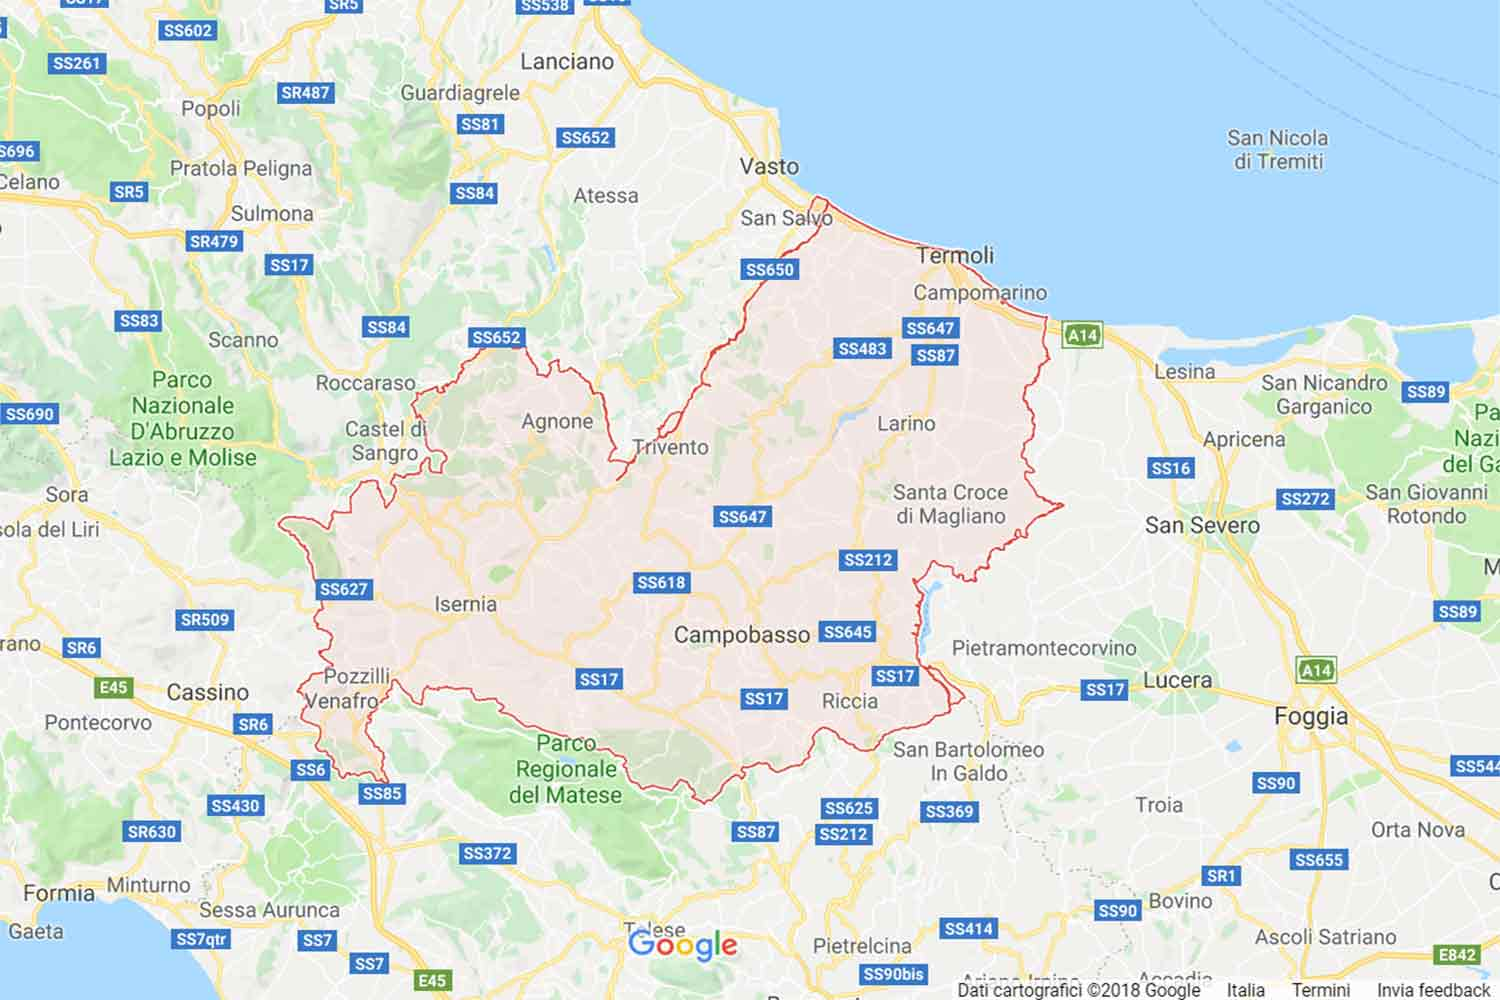 Molise - Campobasso - Colletorto Preventivi Veloci google maps